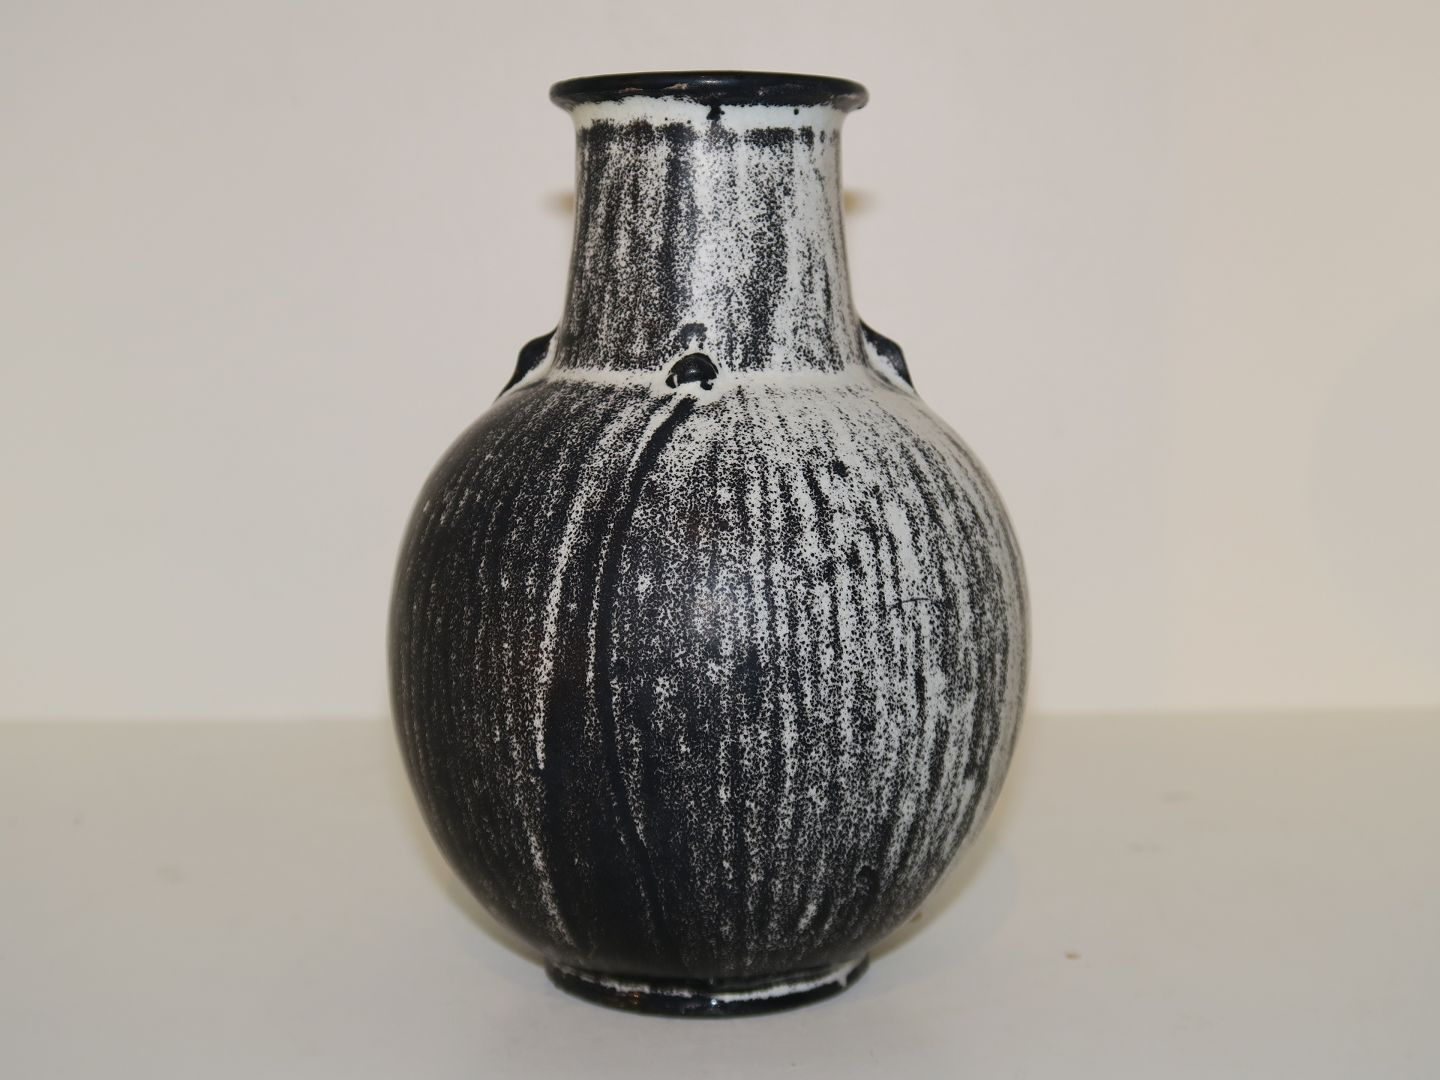 k hler art pottery vase by svend hammershoi from 1920 1930. Black Bedroom Furniture Sets. Home Design Ideas